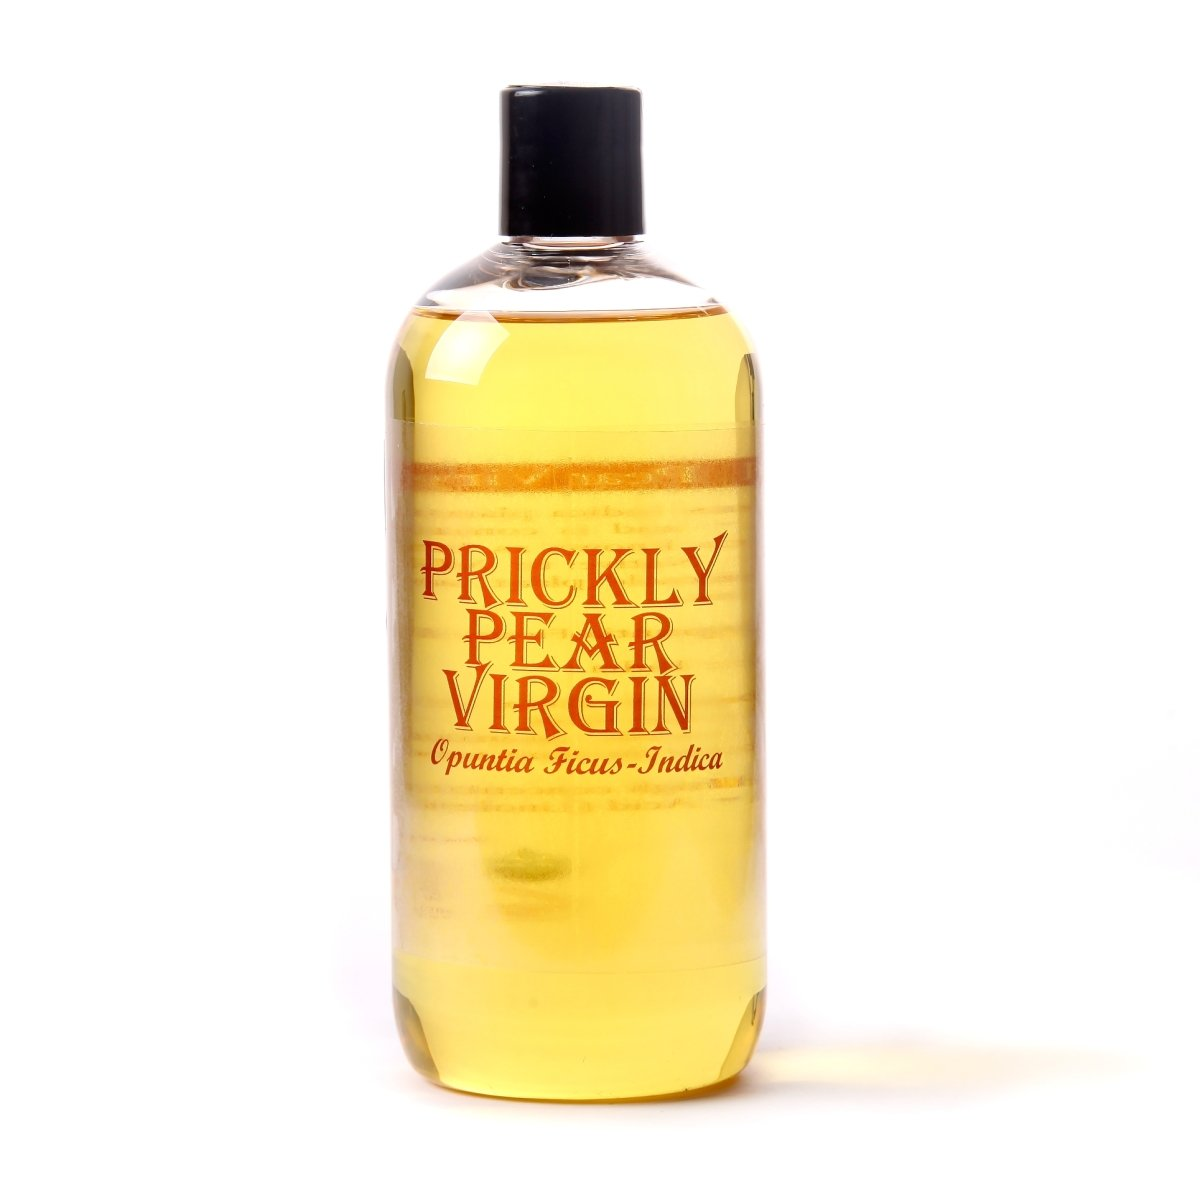 Prickly Pear Virgin Carrier Oil - Mystic Moments UK